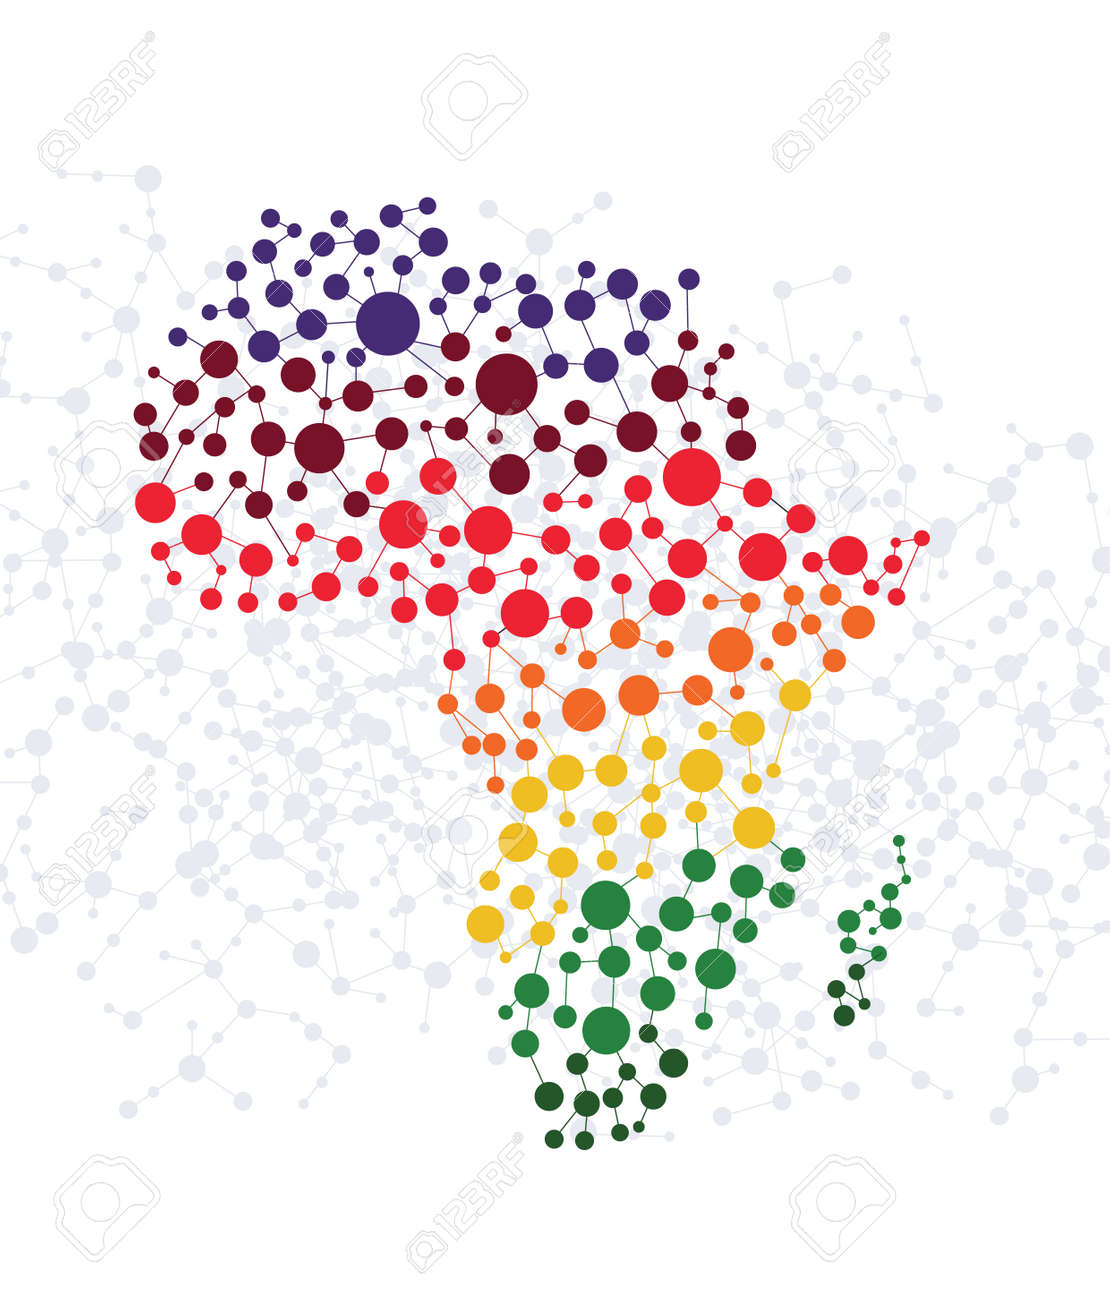 Africa abstract background with dot connection vector - 29384901